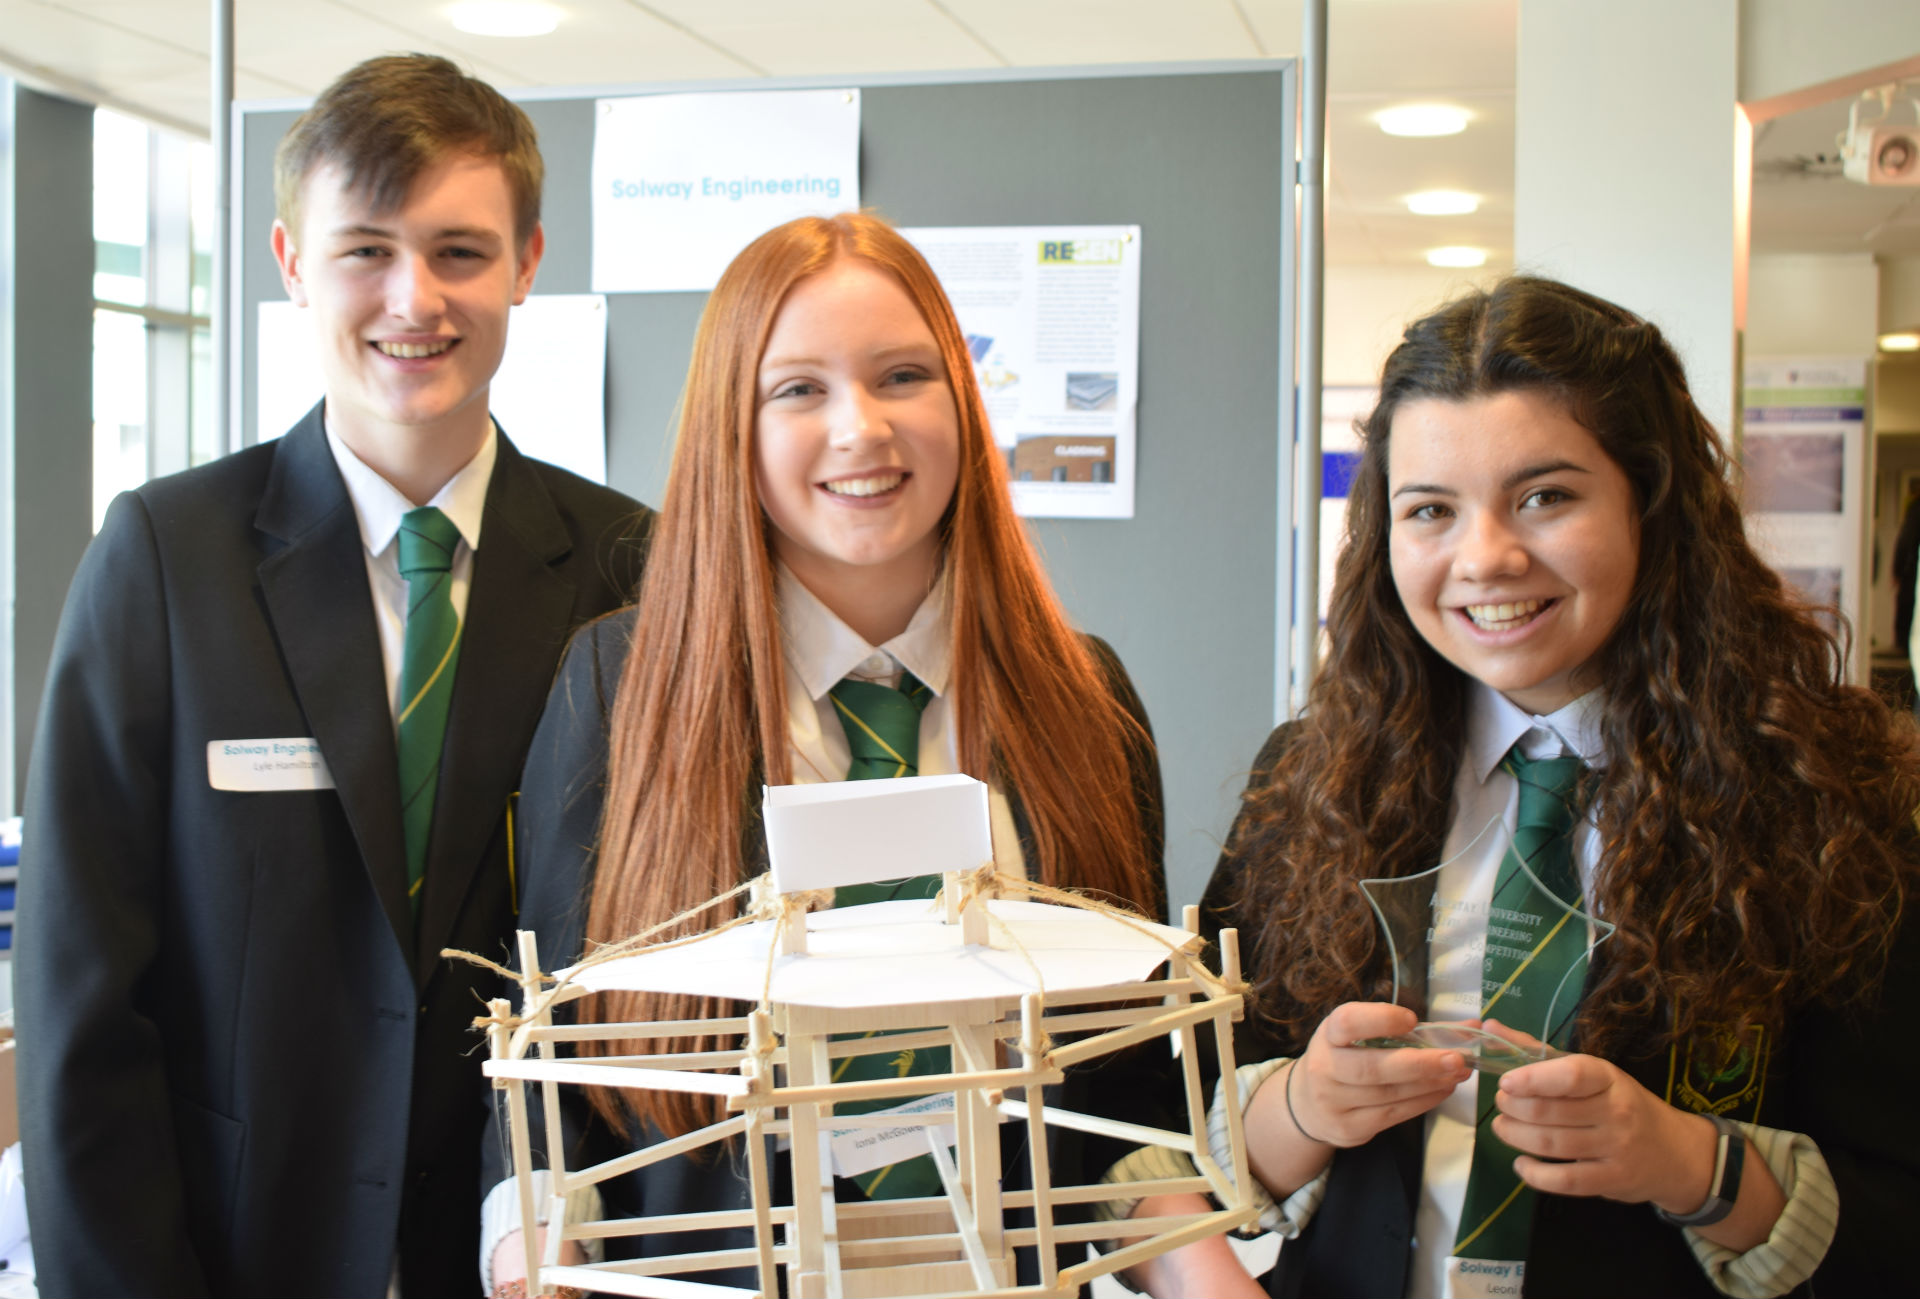 Engineering excellence at Scottish design contest